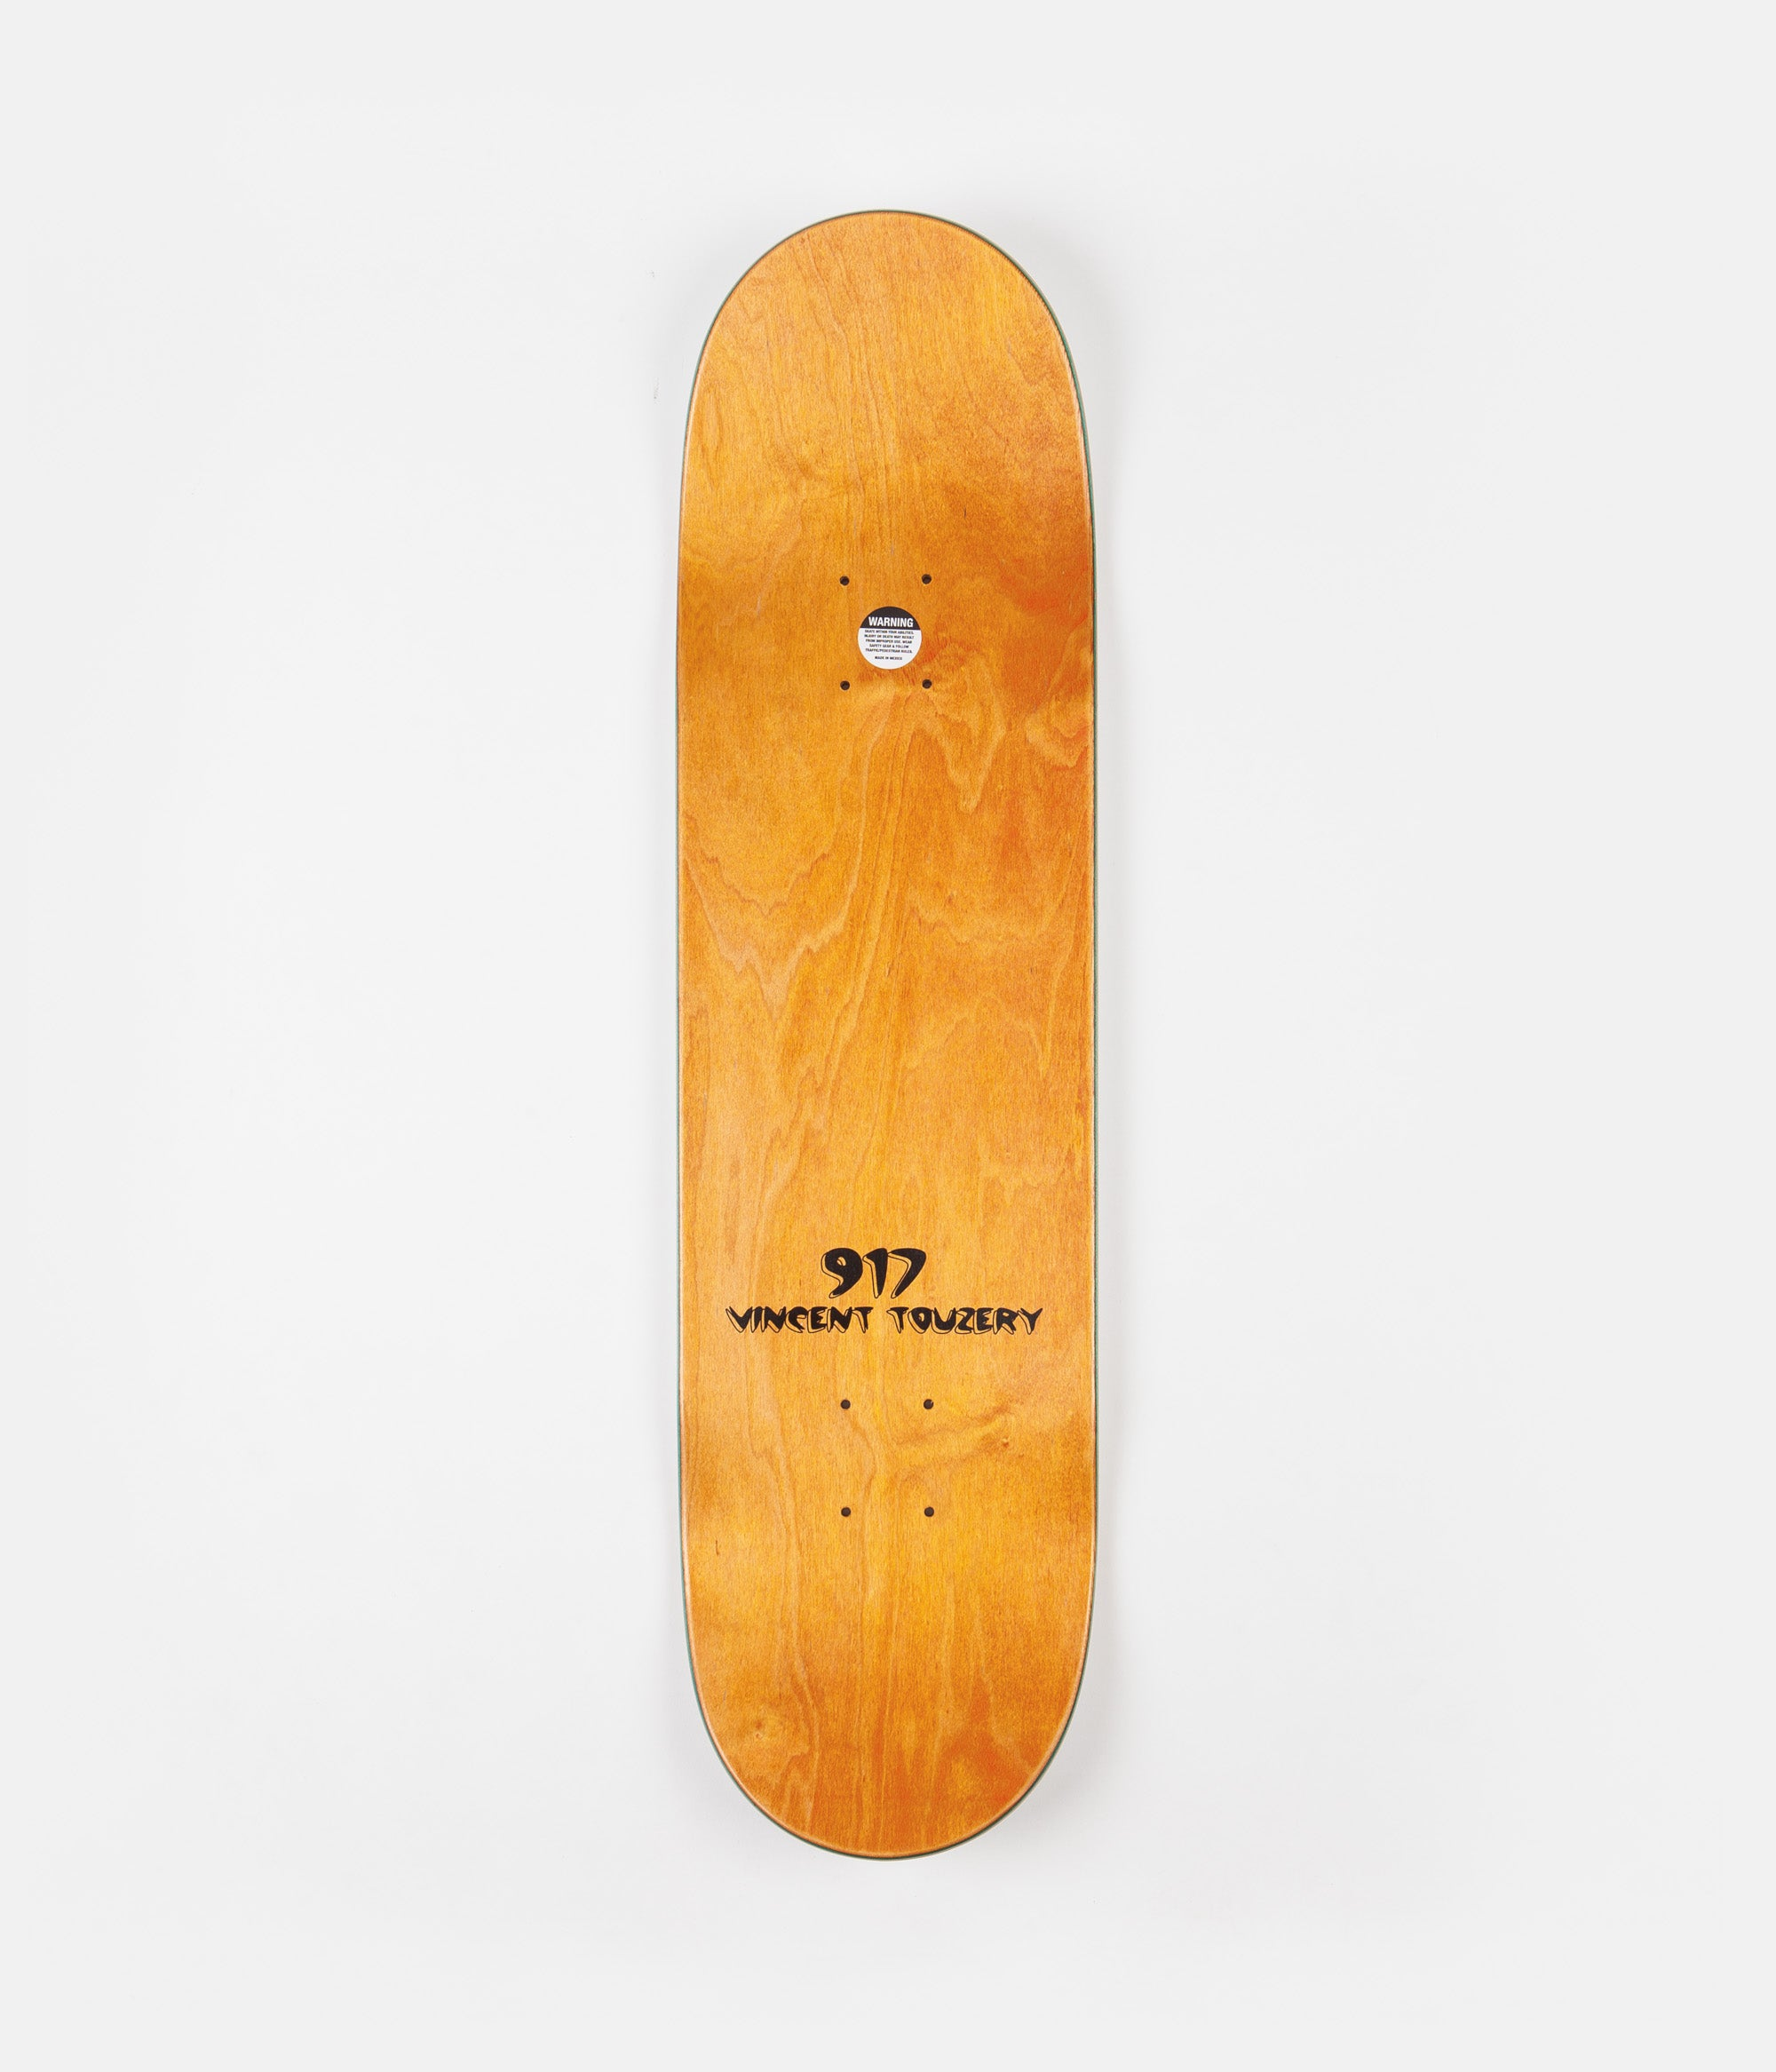 Call Me 917 Cyrus Series Touzery Slick Bottom Deck - 8.25""